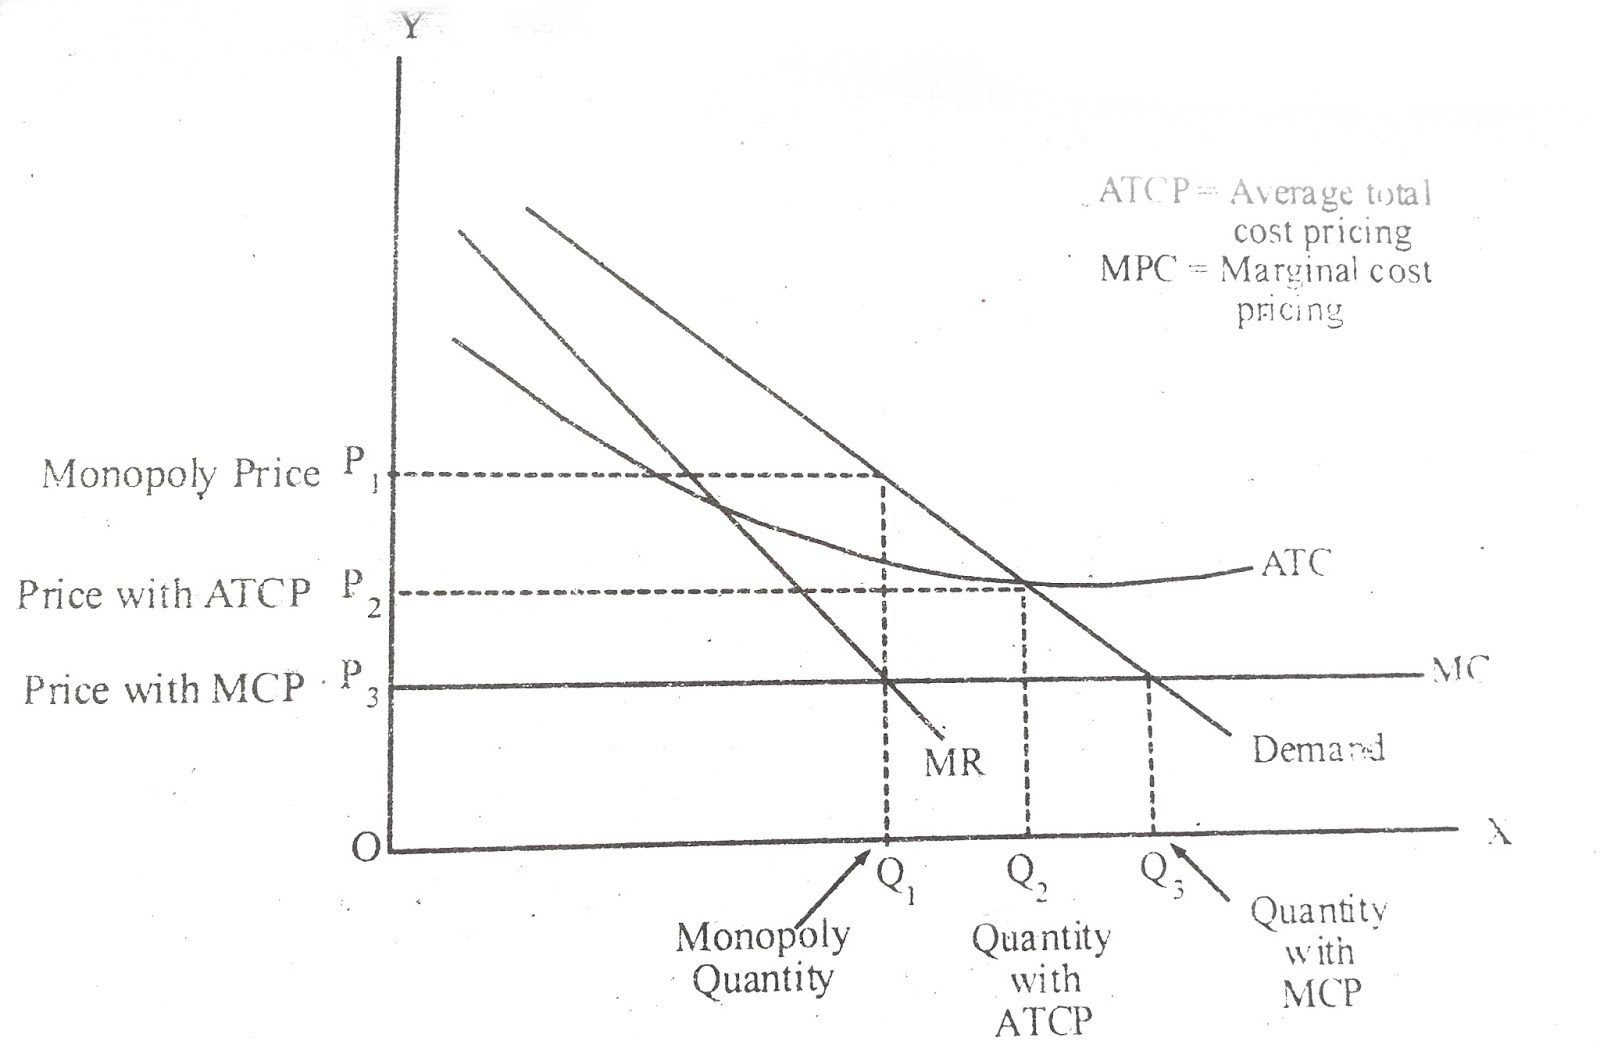 role of price in a market economy Price plays a very important role in a free market economy price indicates if resources are being properly allocated if the price is too low, there will be a shortage of products demand will be greater than supply this will indicate that more resources should be allocated to the manufacturing of the product.